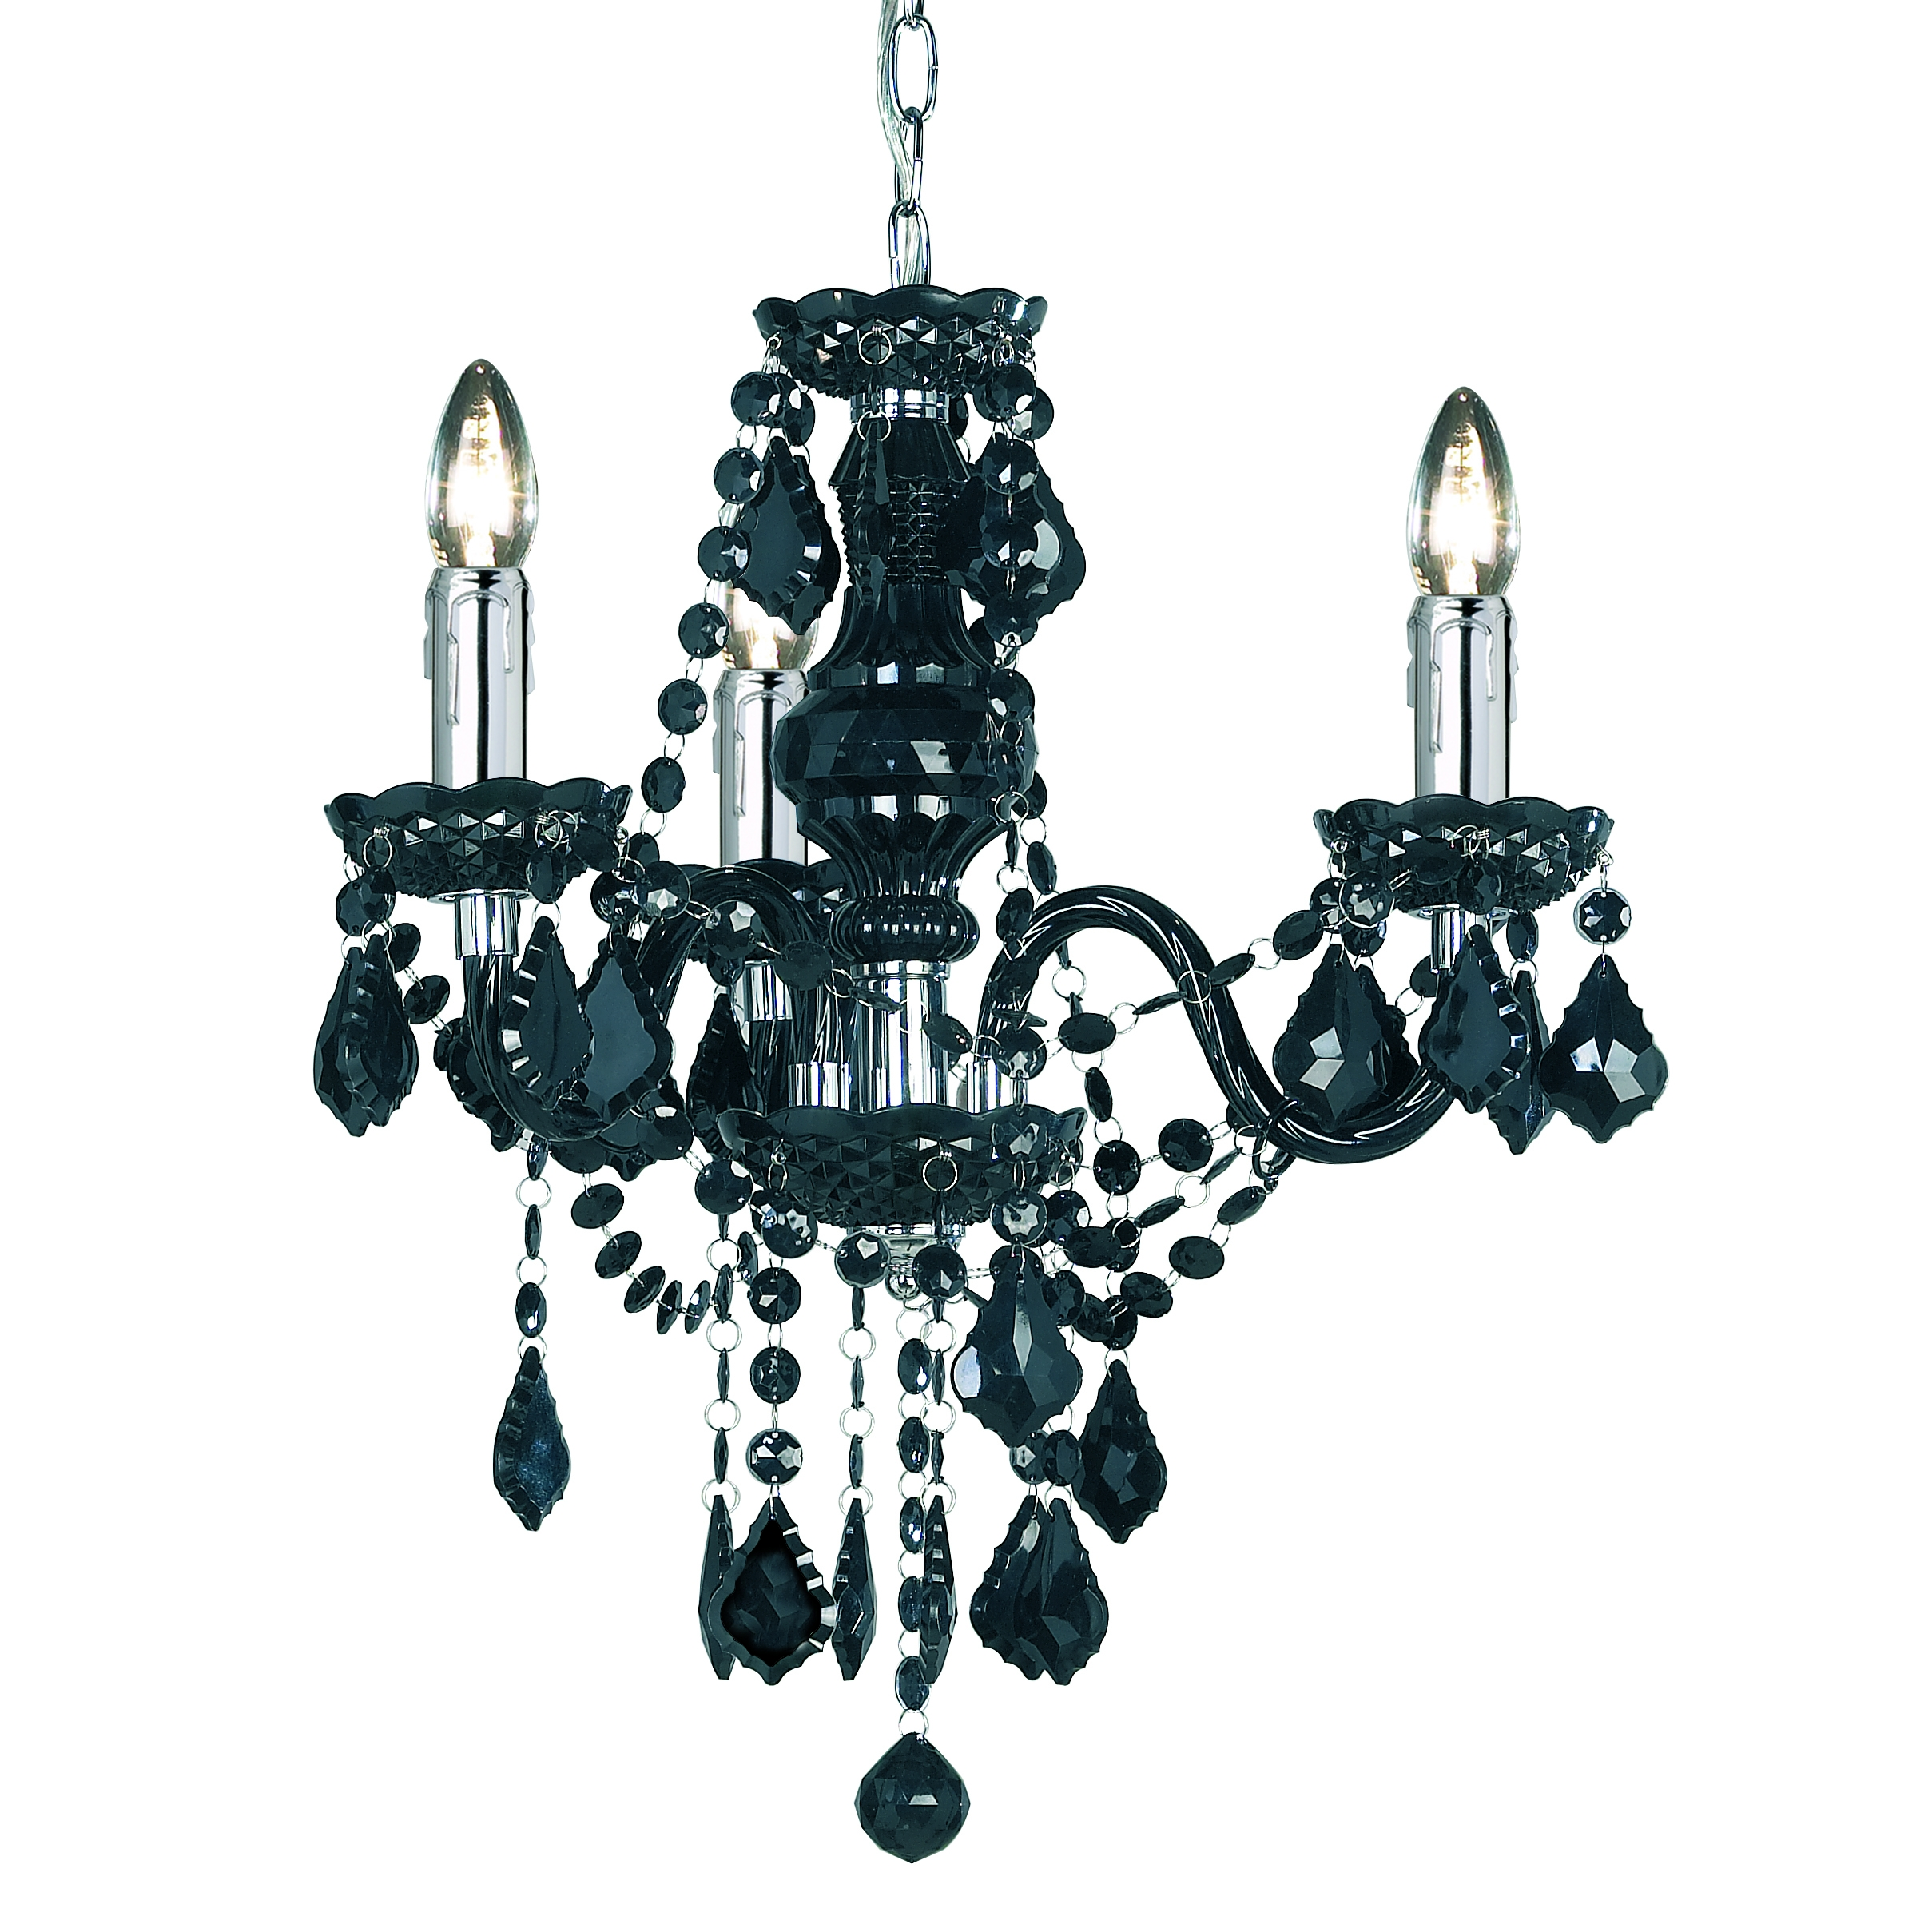 Design Ideas For Gothic Chandelier 18835 Regarding Black Gothic Chandelier (Image 9 of 15)